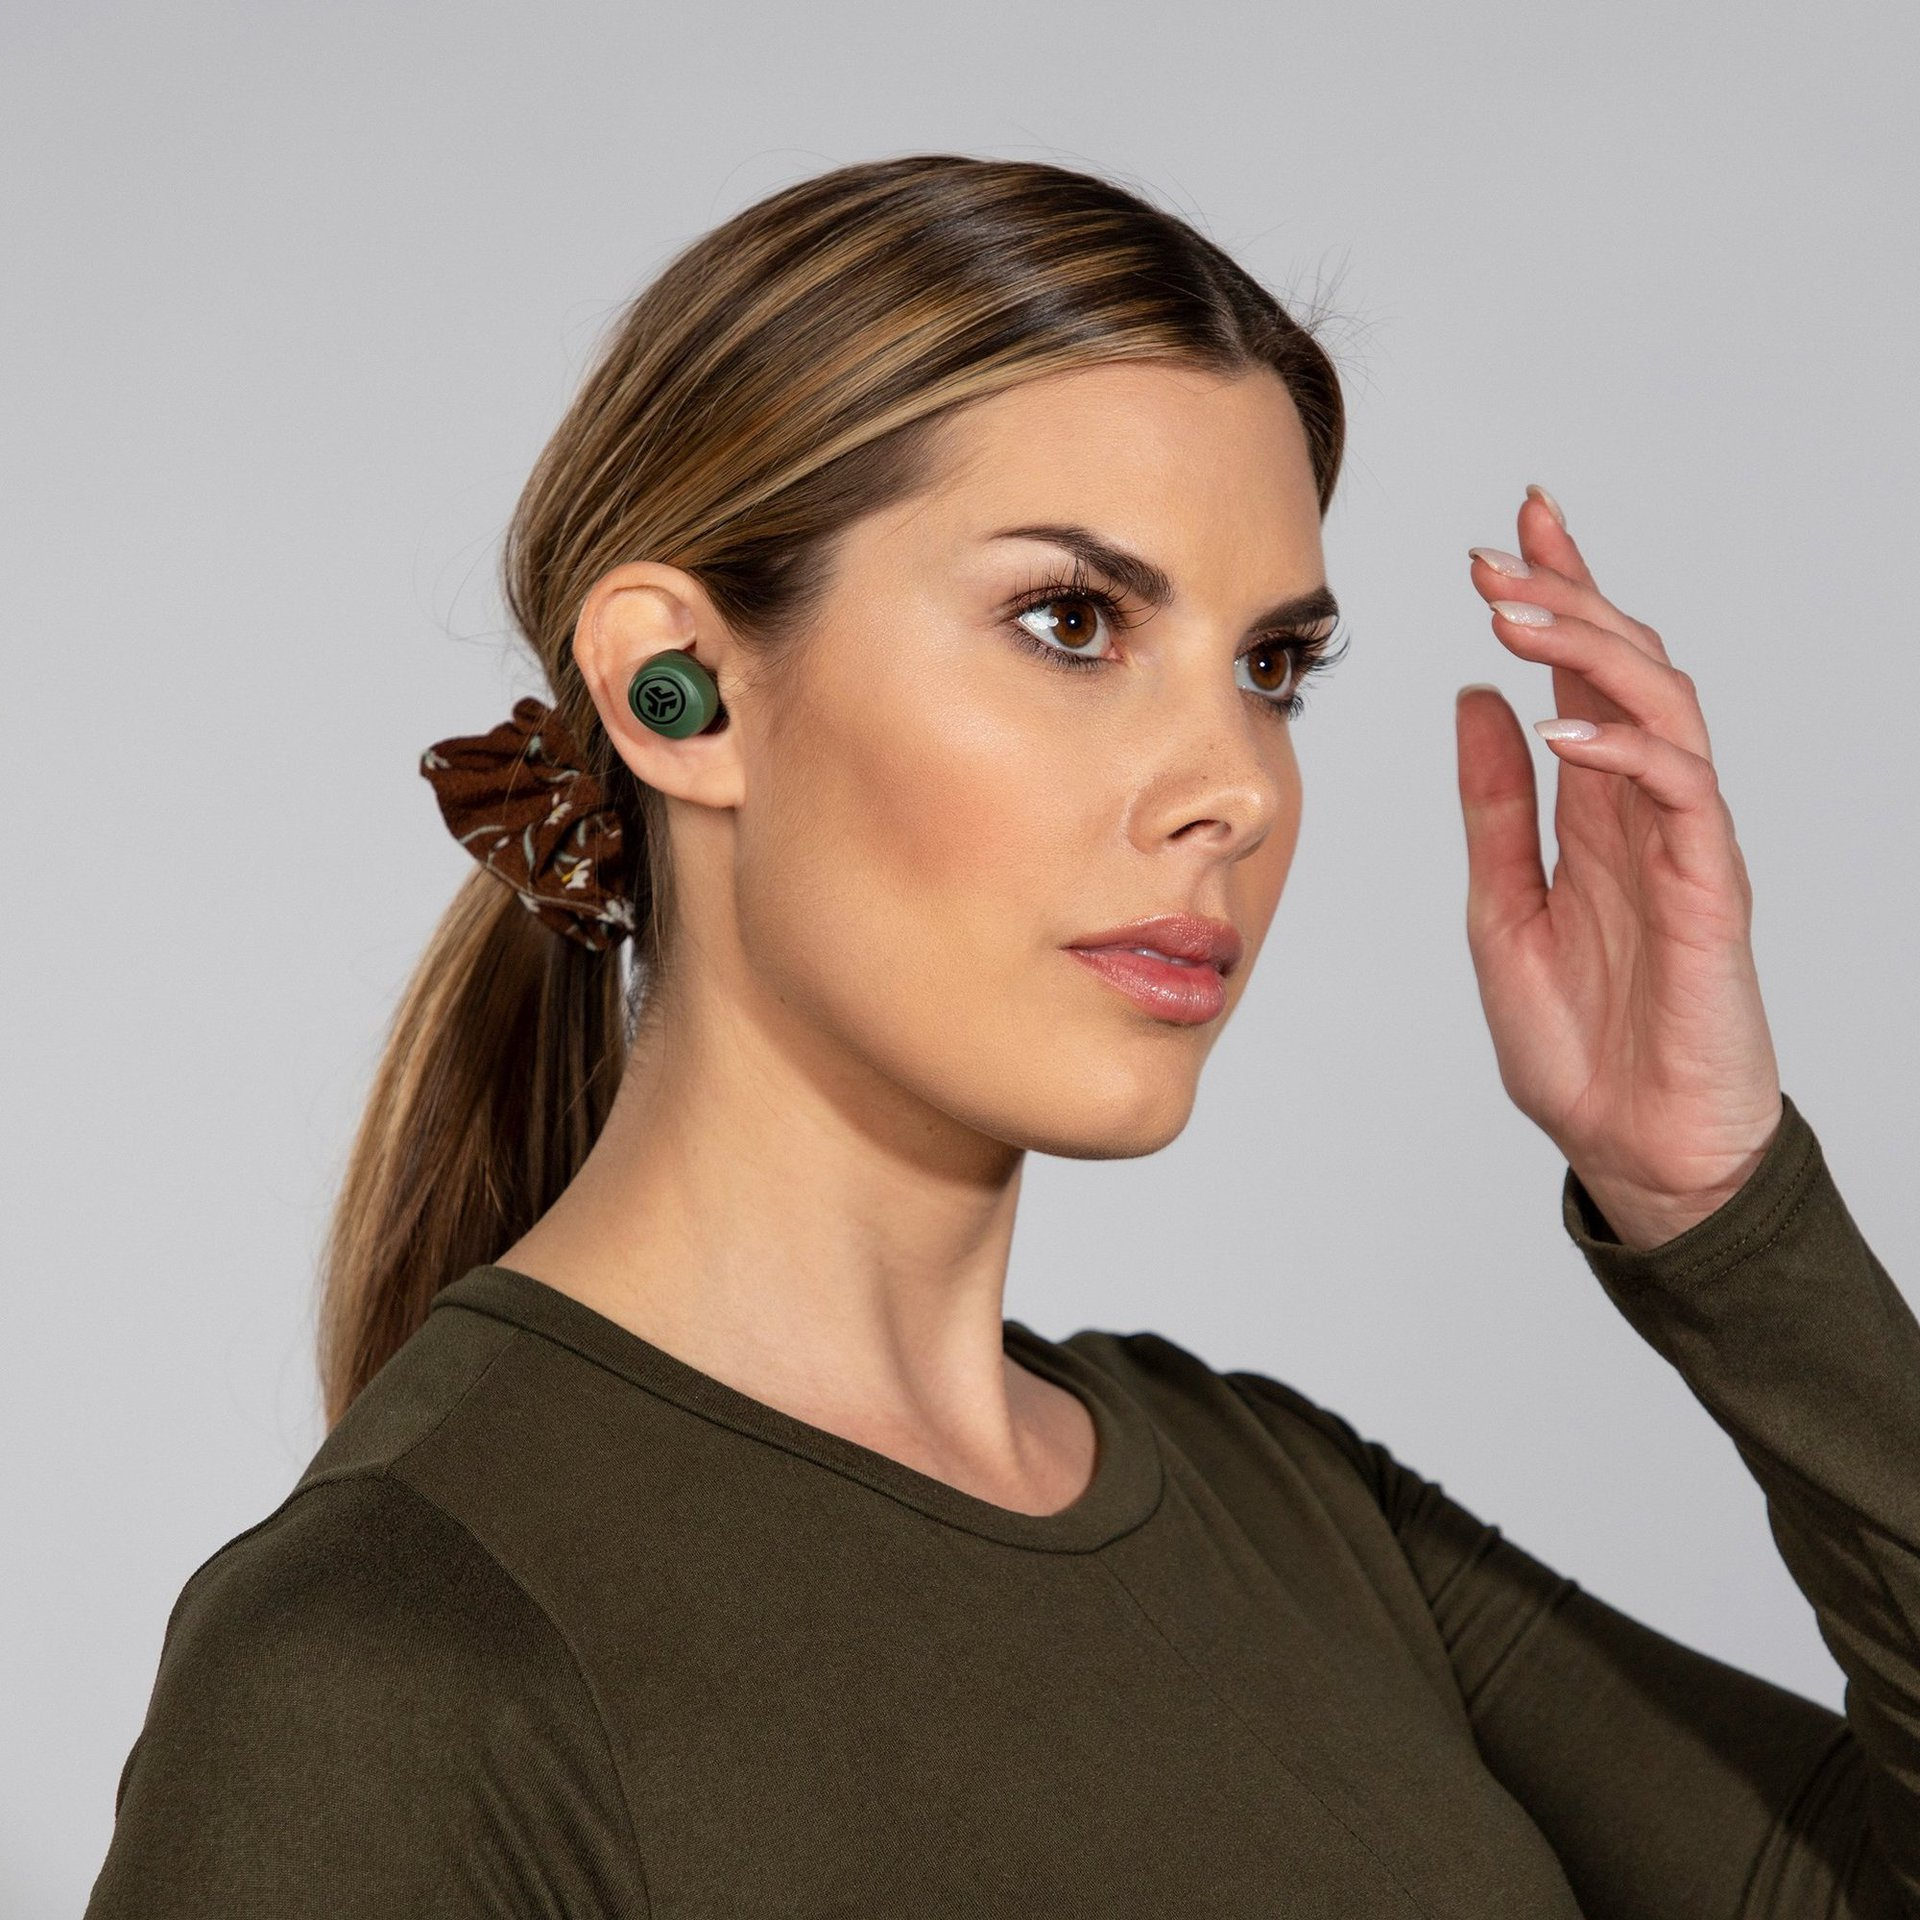 JLab-Go-Air-true-wireless-earbuds-green-model